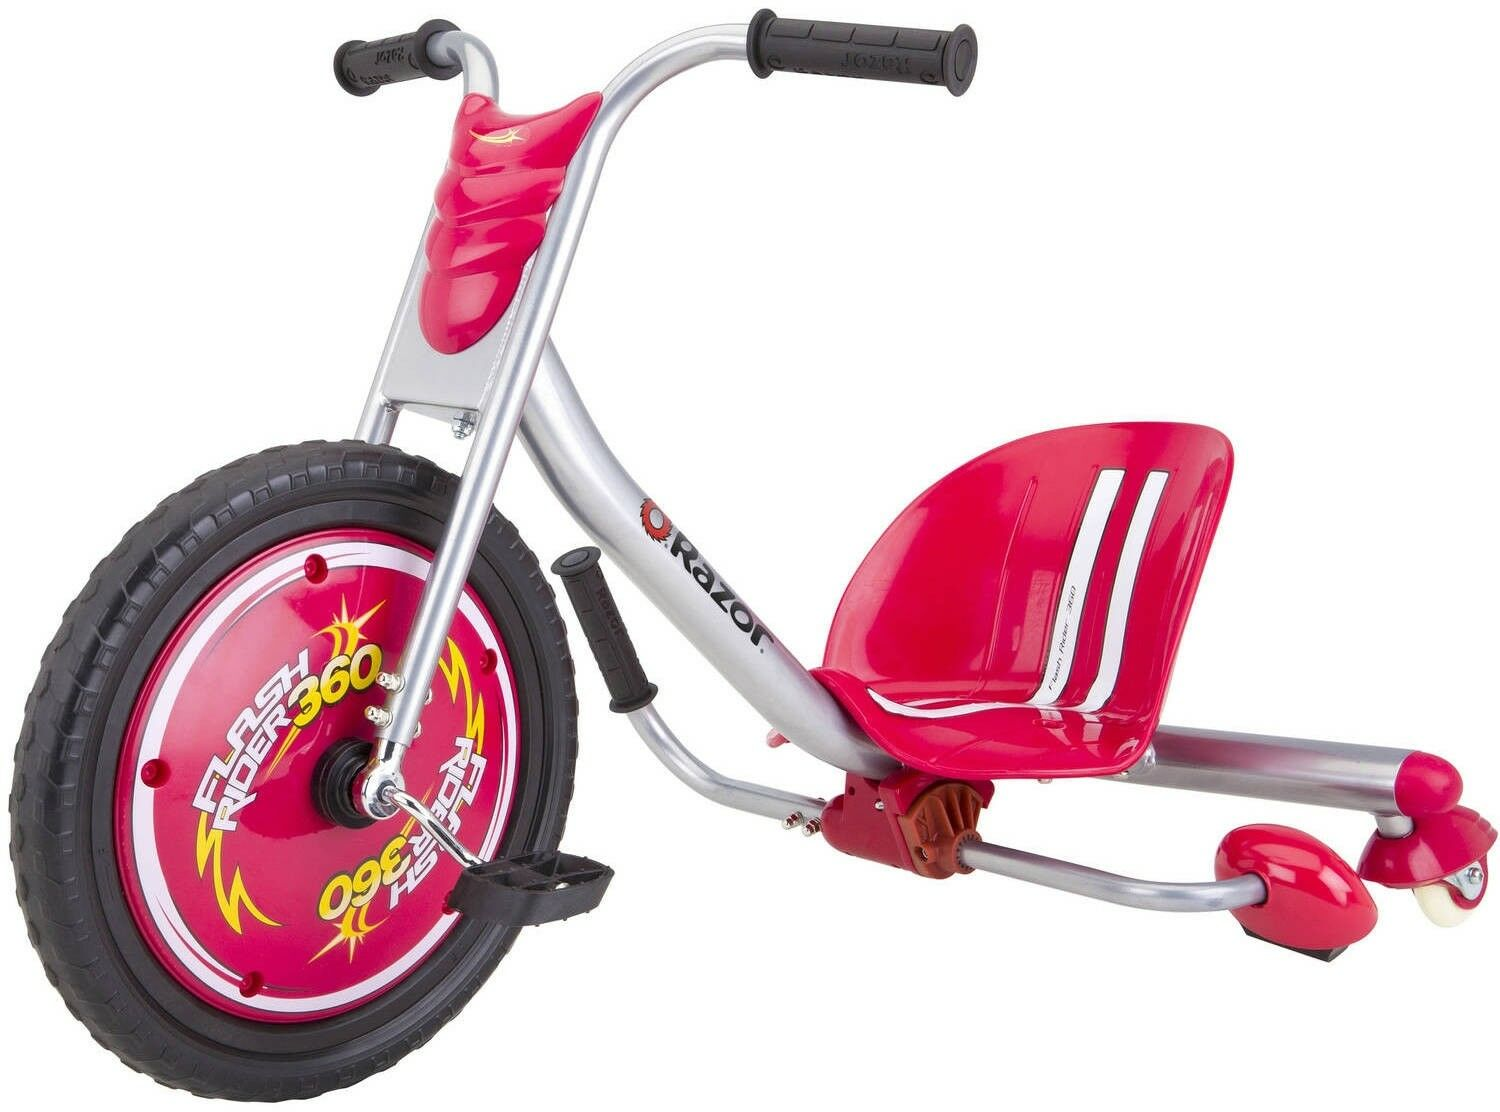 Sparking Trike Ride On Toy Kids Kids Kids Tricycle Exciting 360 Degree Spins Razor Red 0b5f79